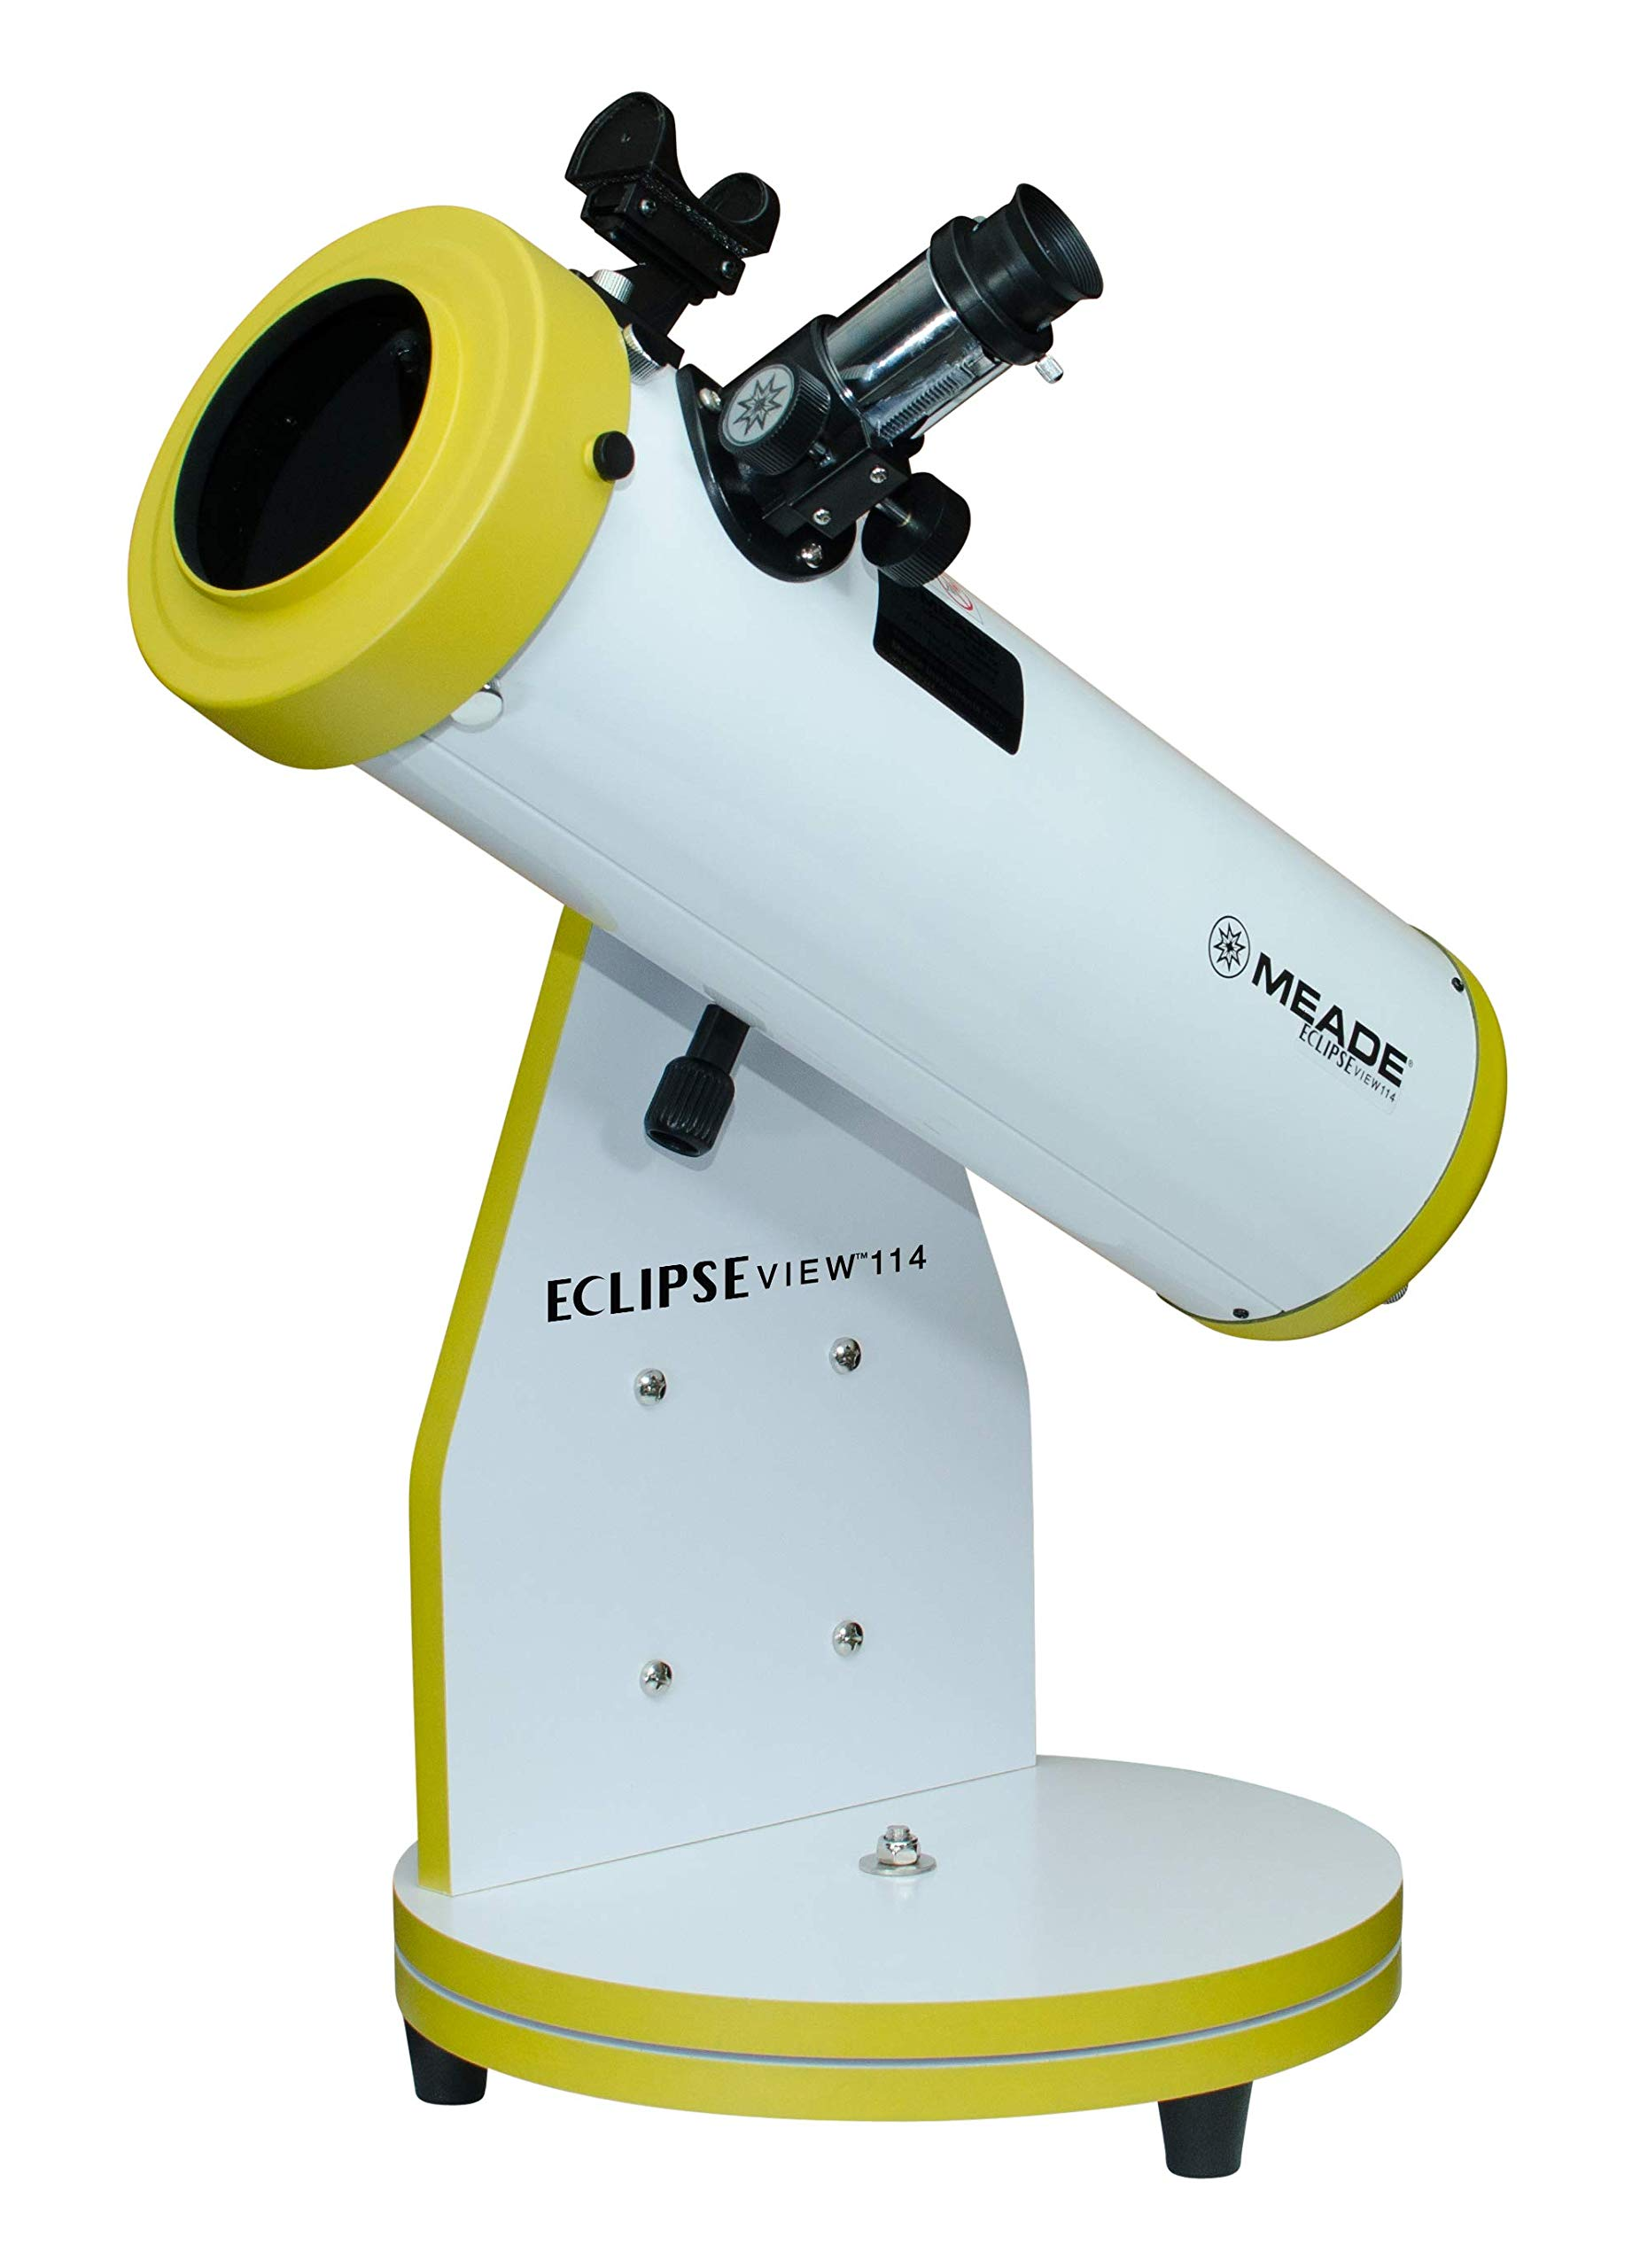 Meade Instruments Day and Night Telescope - 227001 EclipseView 114mm Reflecting Telescope with Removable Filter by Meade Instruments